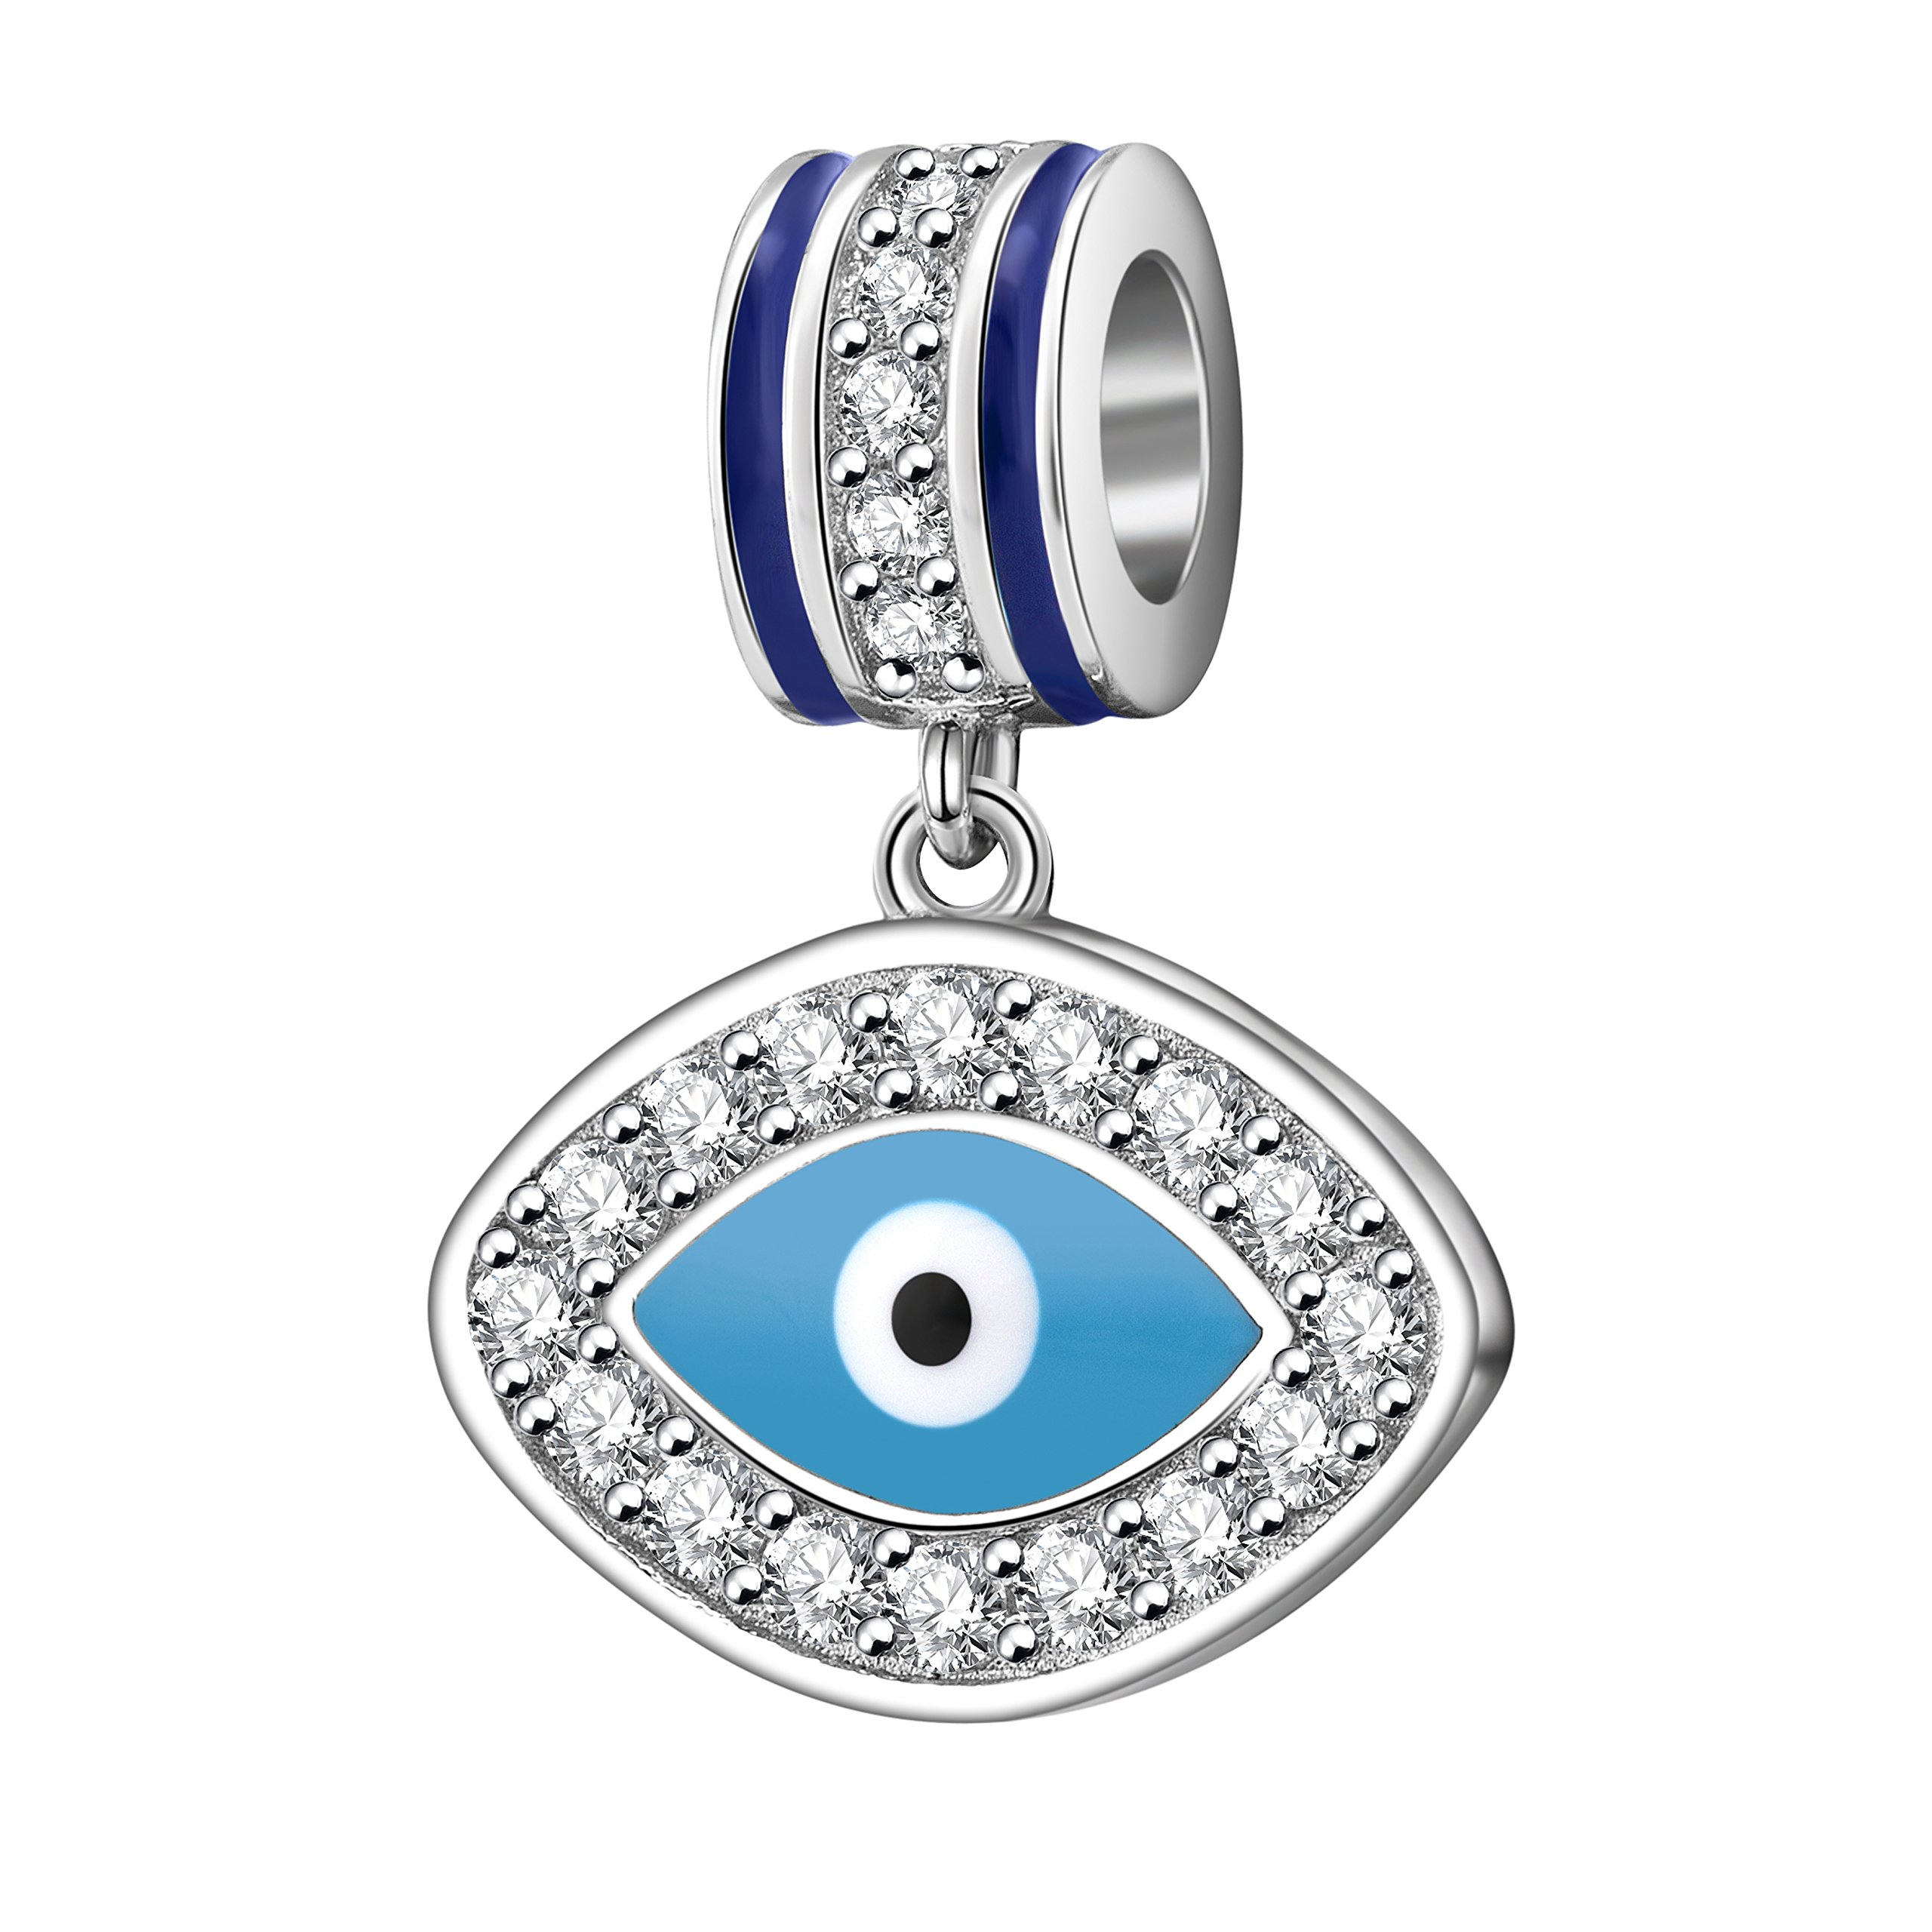 Evil Eye Charms 925 Sterling Silver Symbol of Insight Bead Lucky Charm for European Bracelet (C)